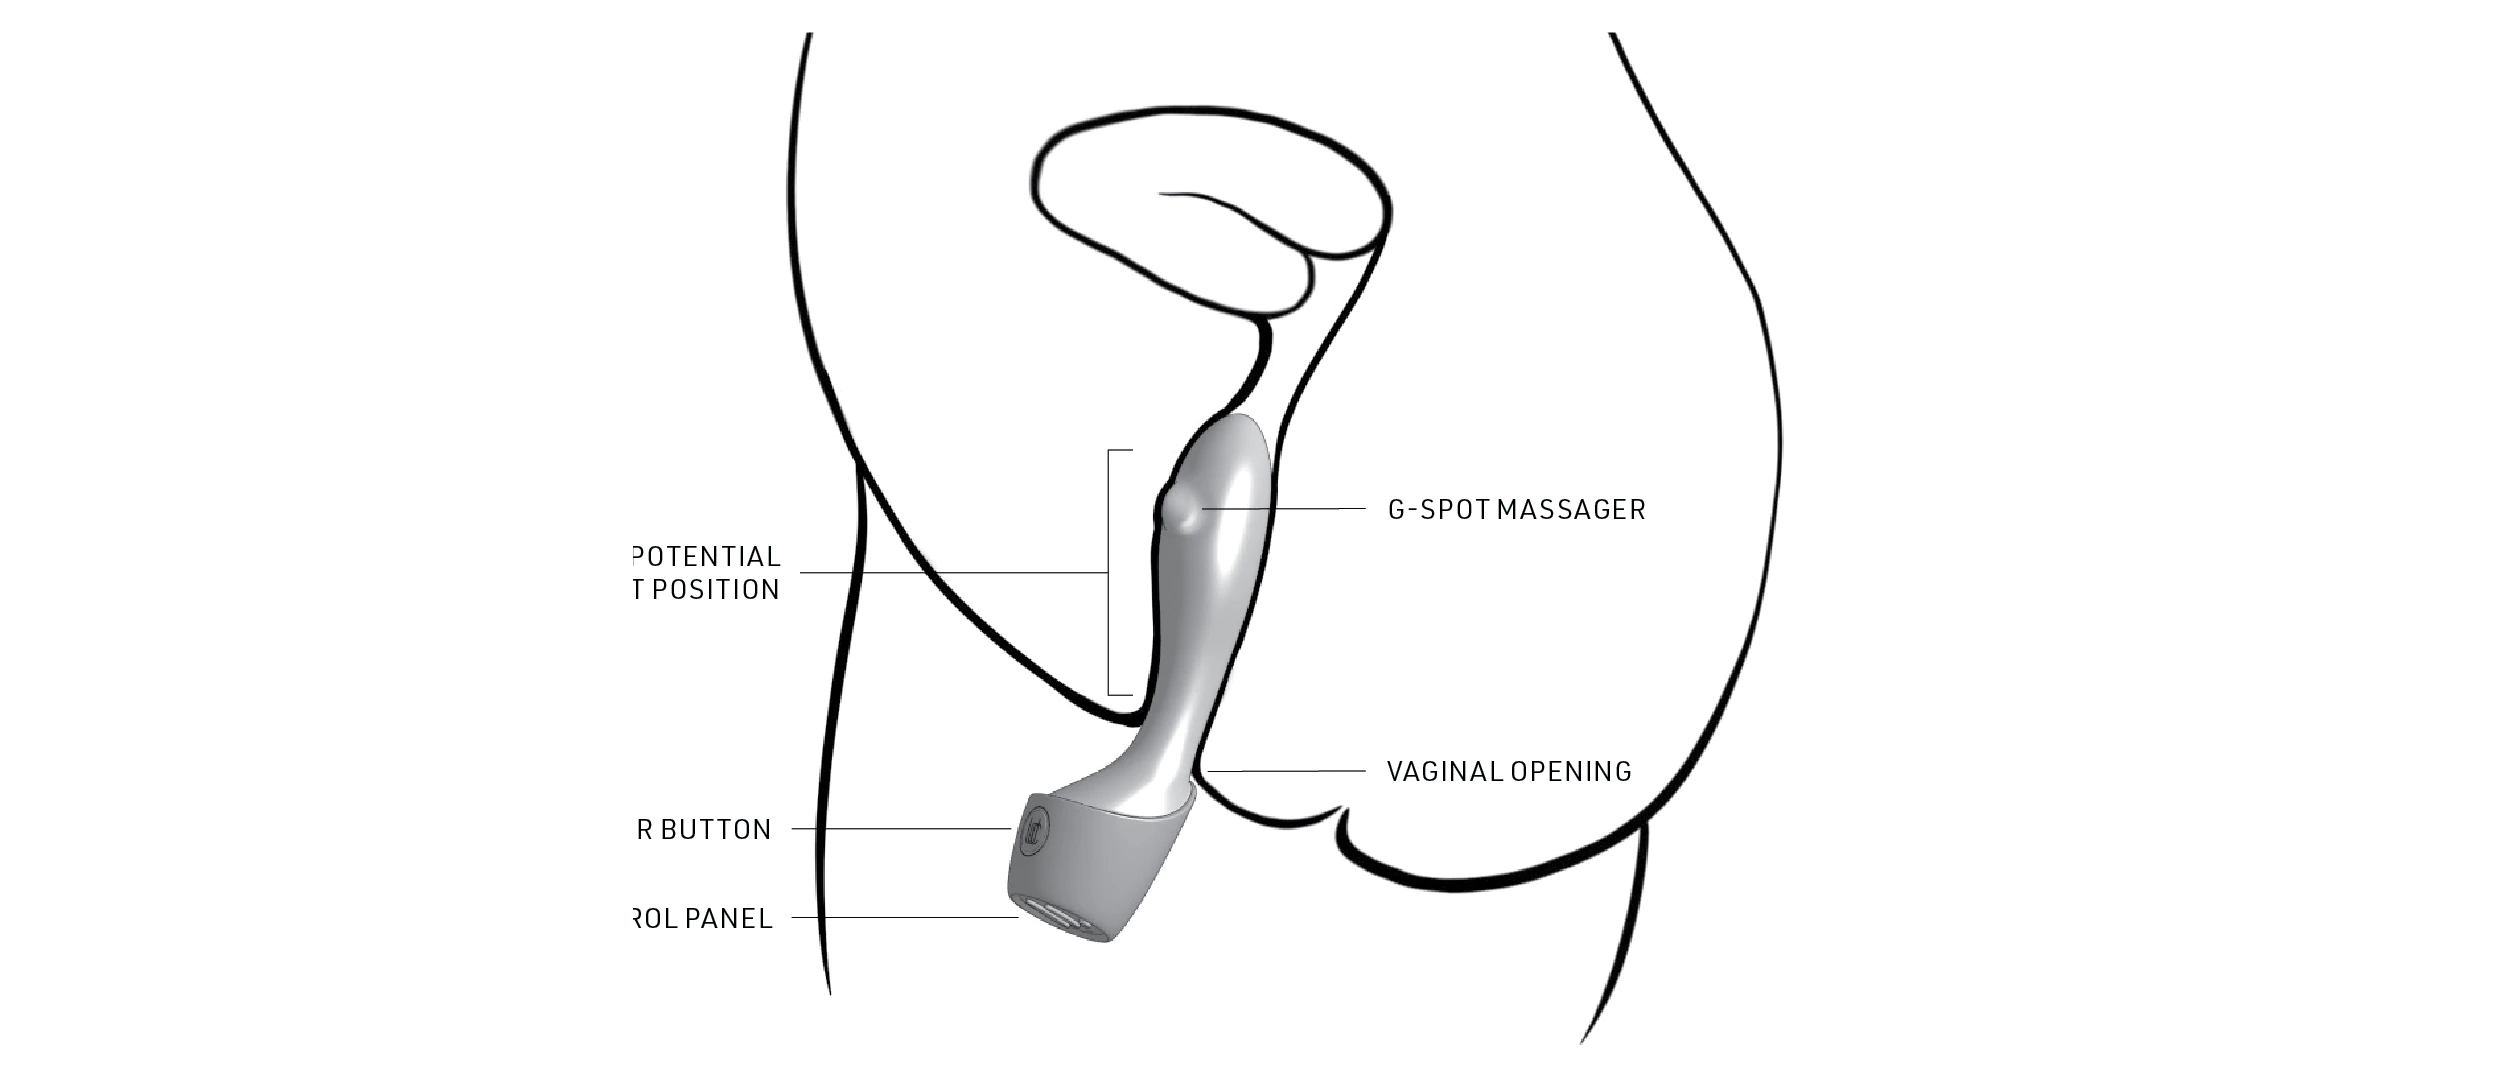 lora-dicarlo-onda-g-spot-vibrator-luxury-sex-toy-how-to-use.png